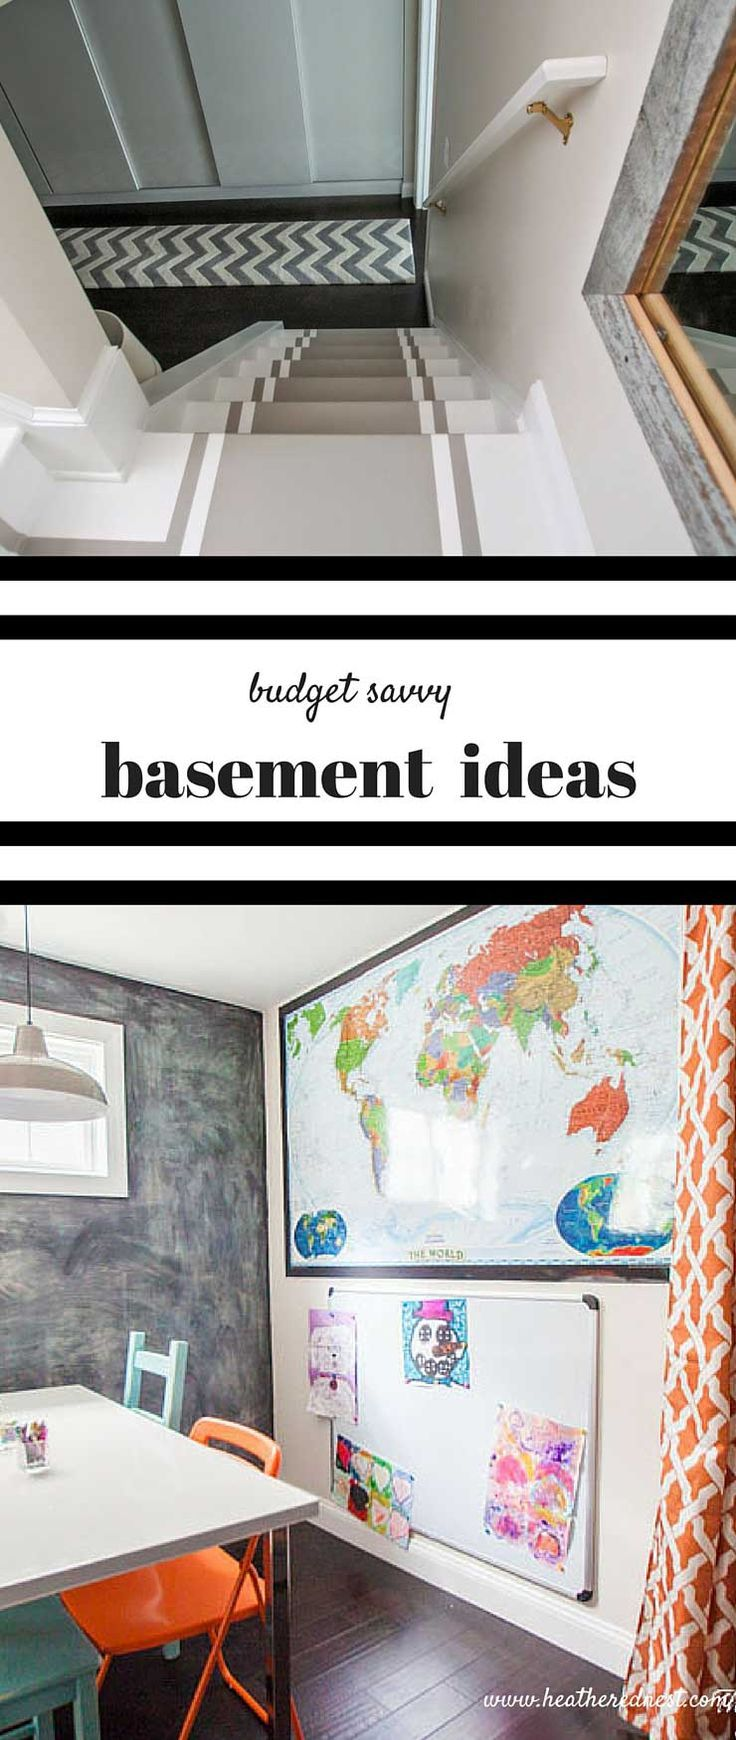 23 best Basement Design images on Pinterest | Bathroom makeovers ...